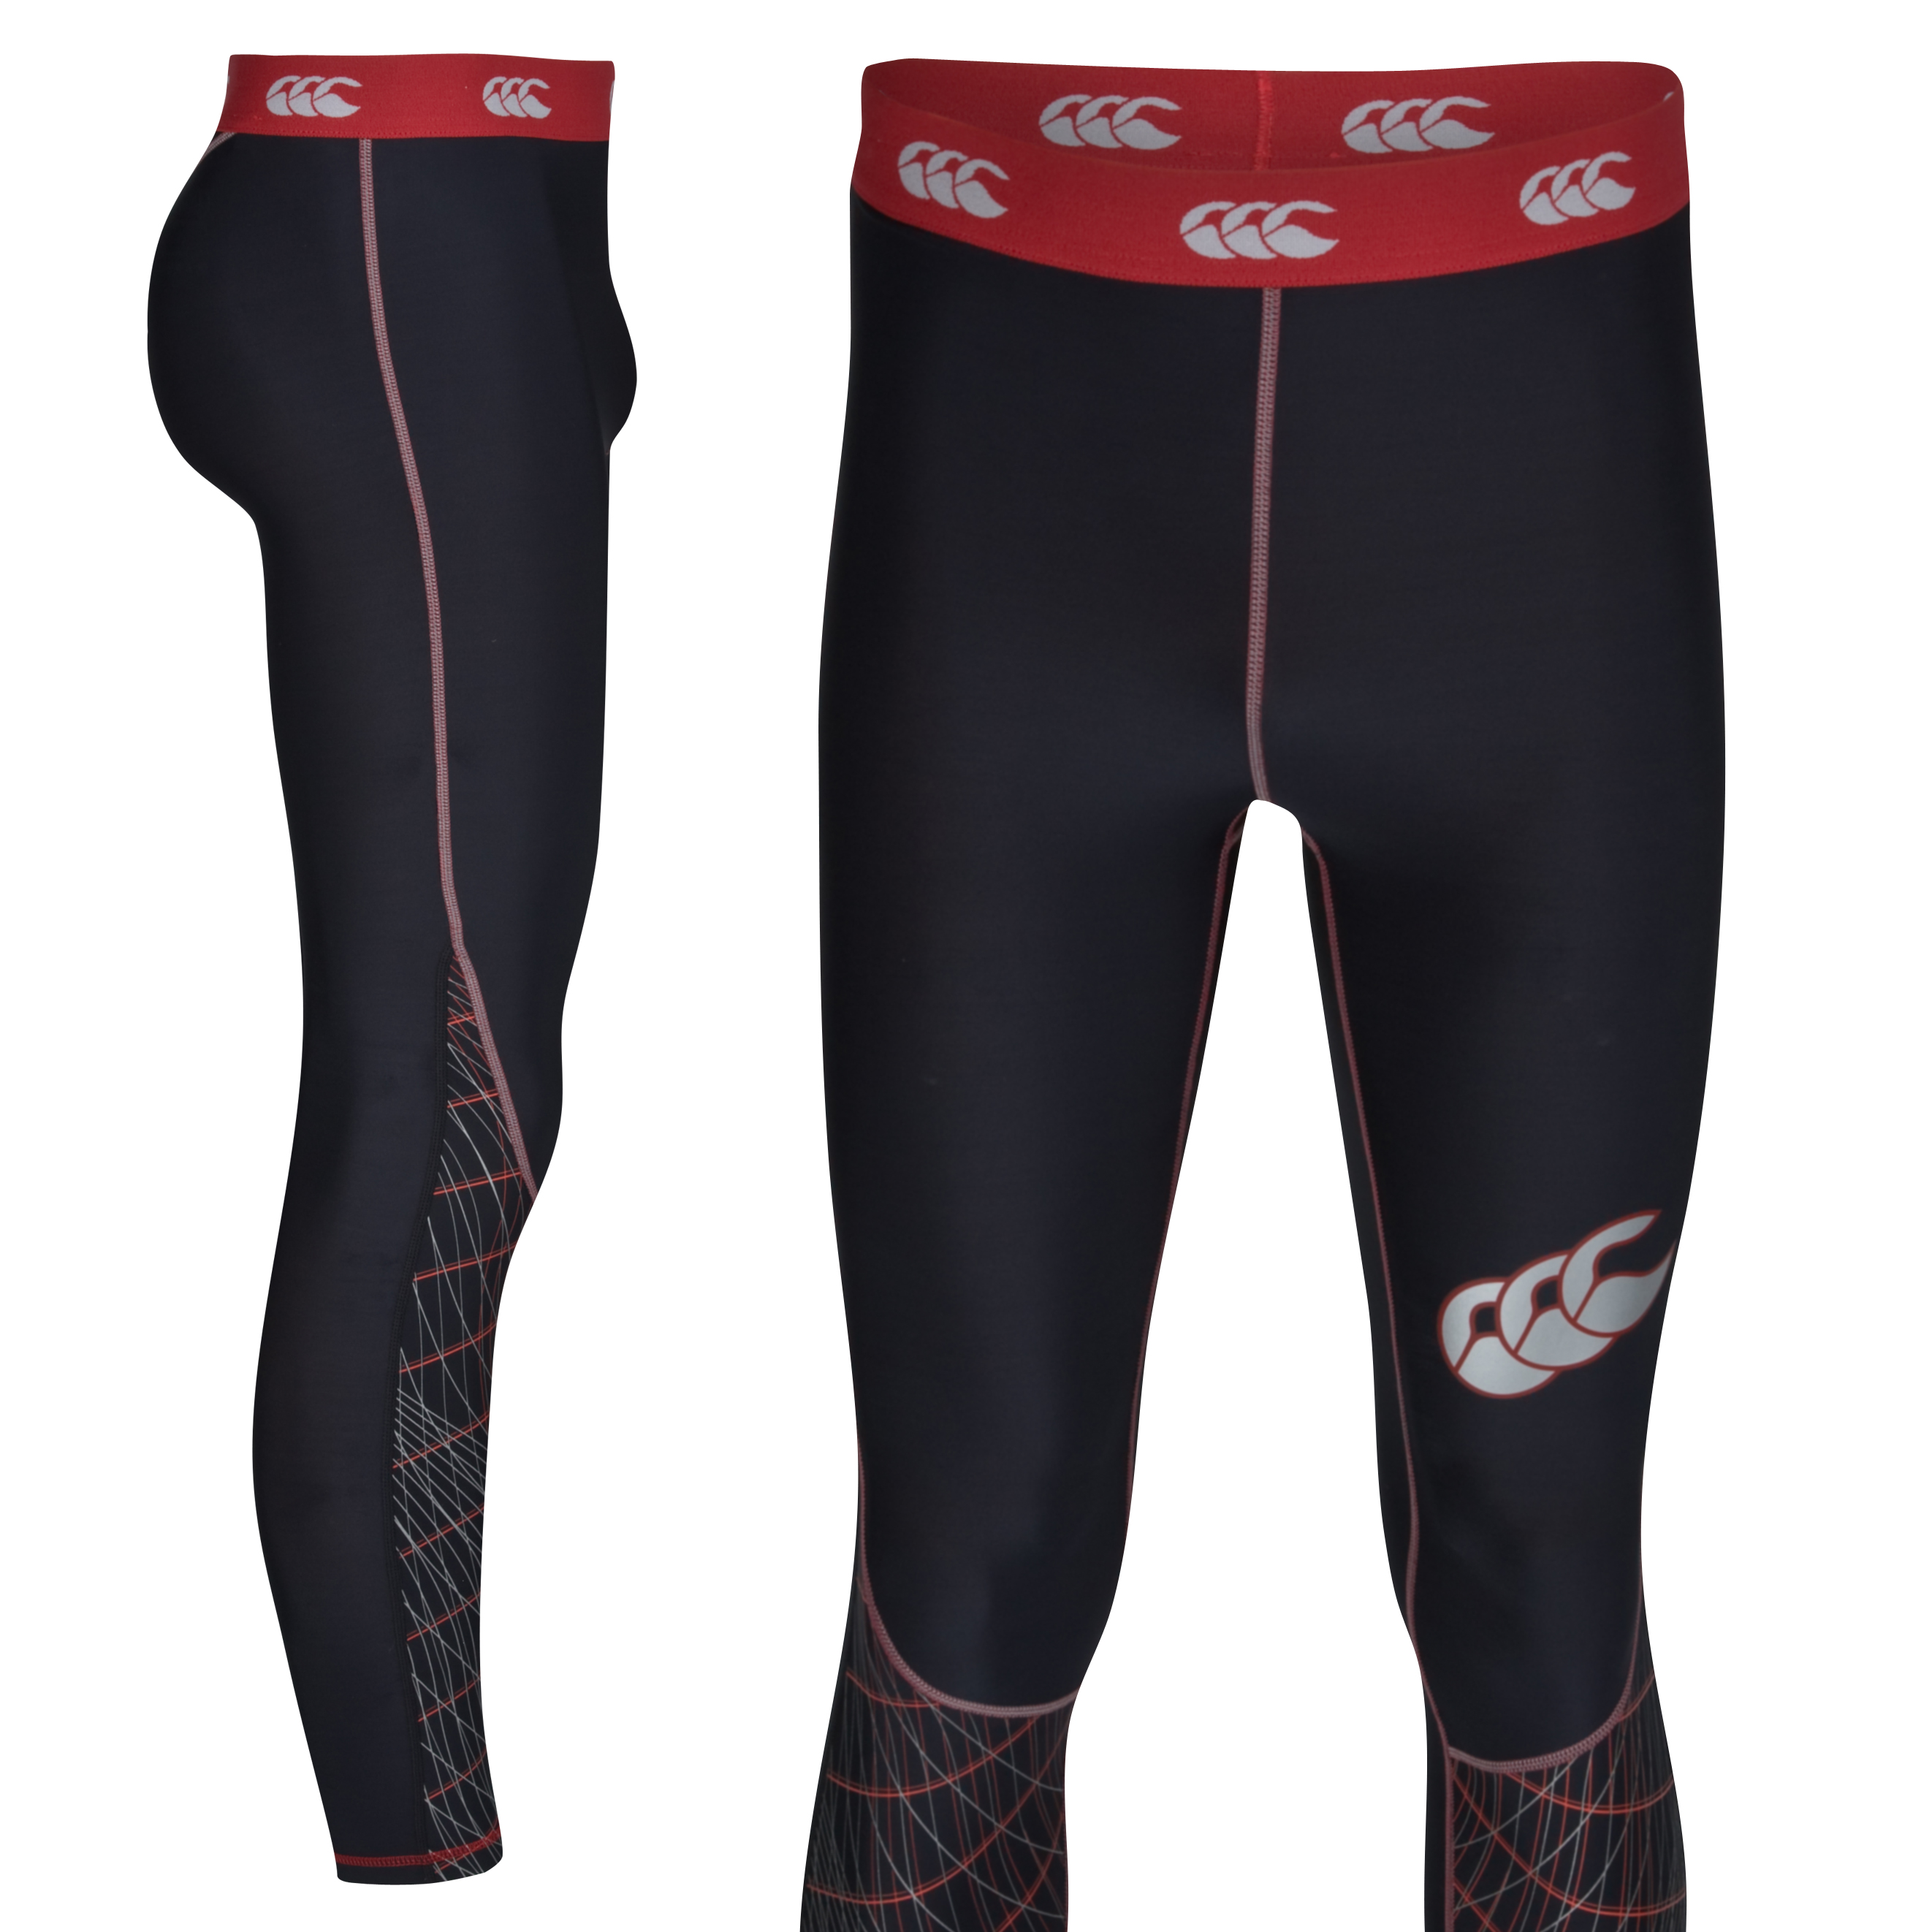 Canterbury Mercury Hybrid Compression Legging - Black